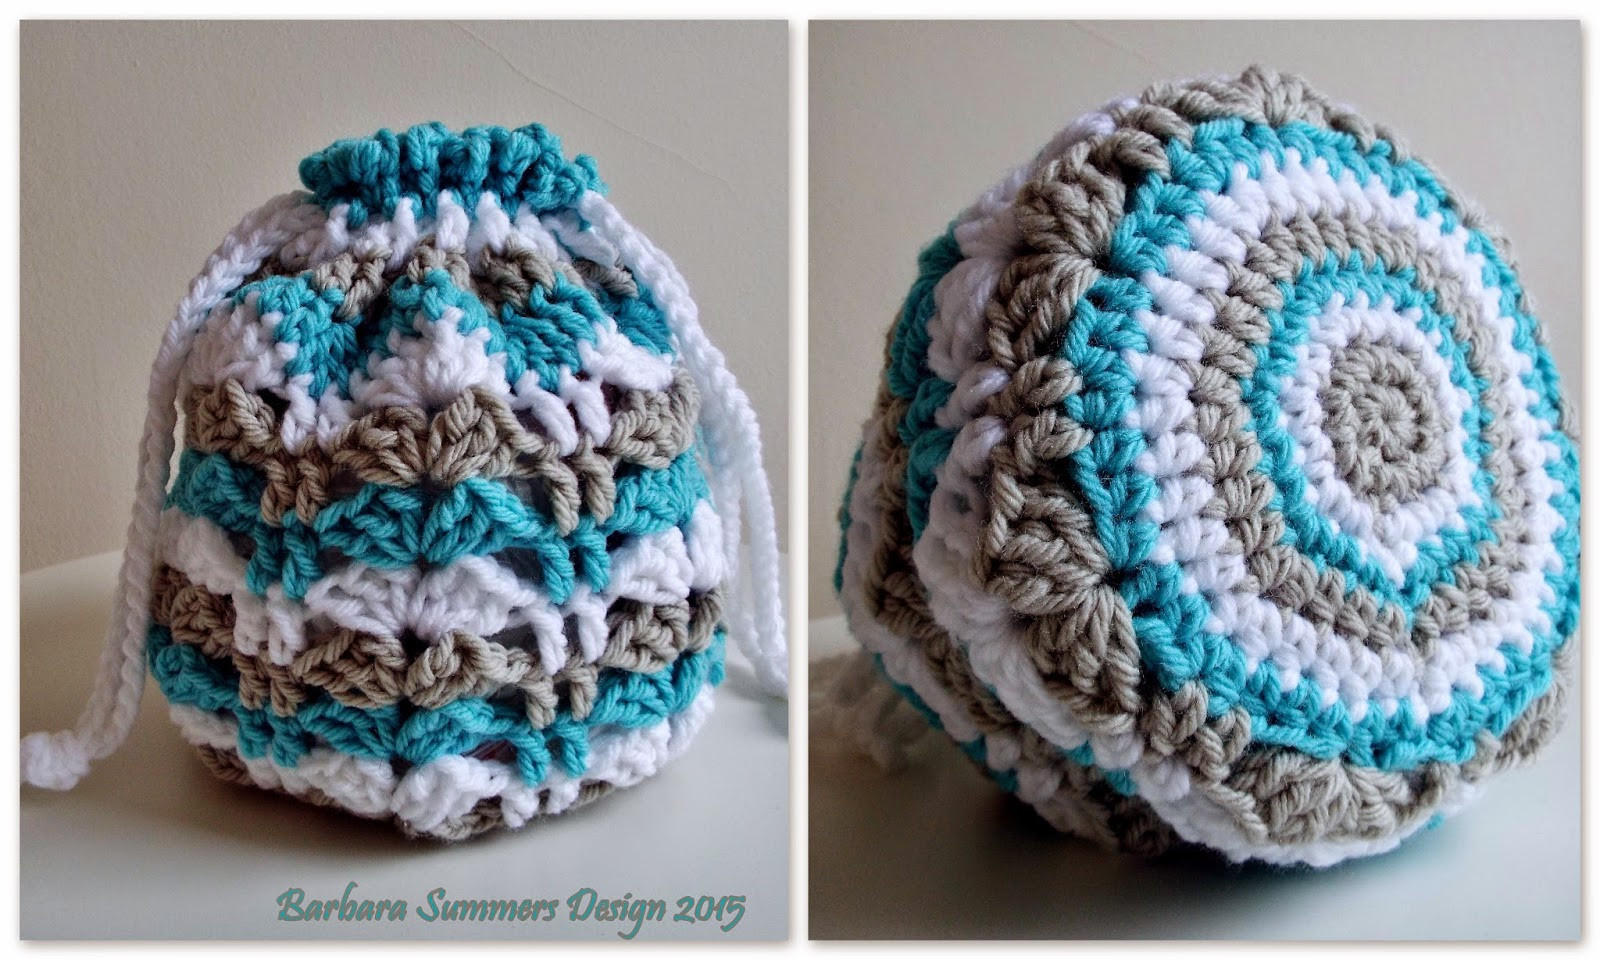 Crochet Backpack Awesome Microcknit Creations Cindy Crochet Drawstring Bag Free Of Amazing 48 Pics Crochet Backpack